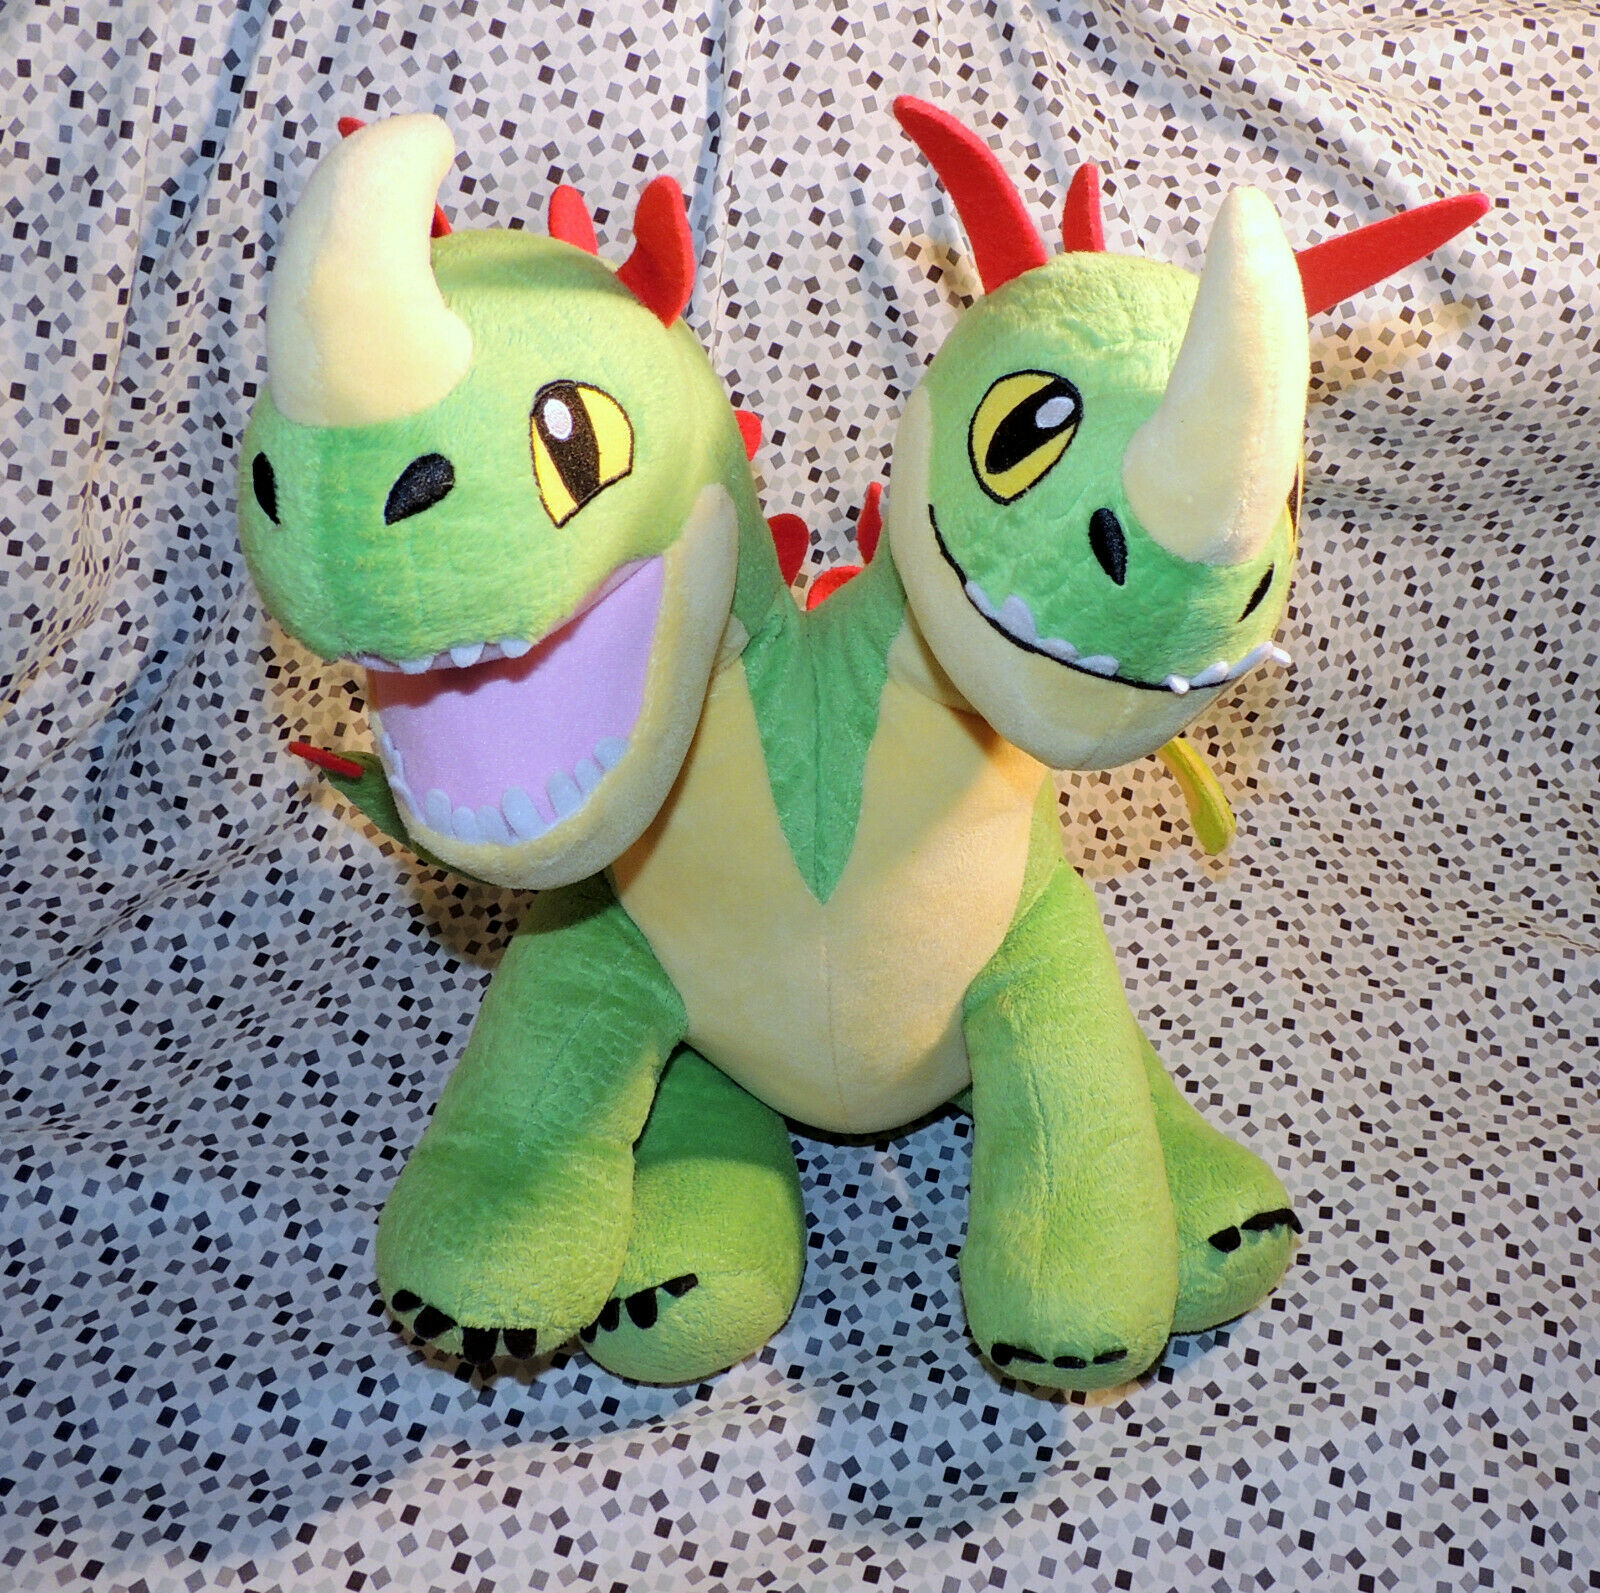 Build A Bear Dreamworks How To Train Your Dragon Barf & Belch Two Headed Plush